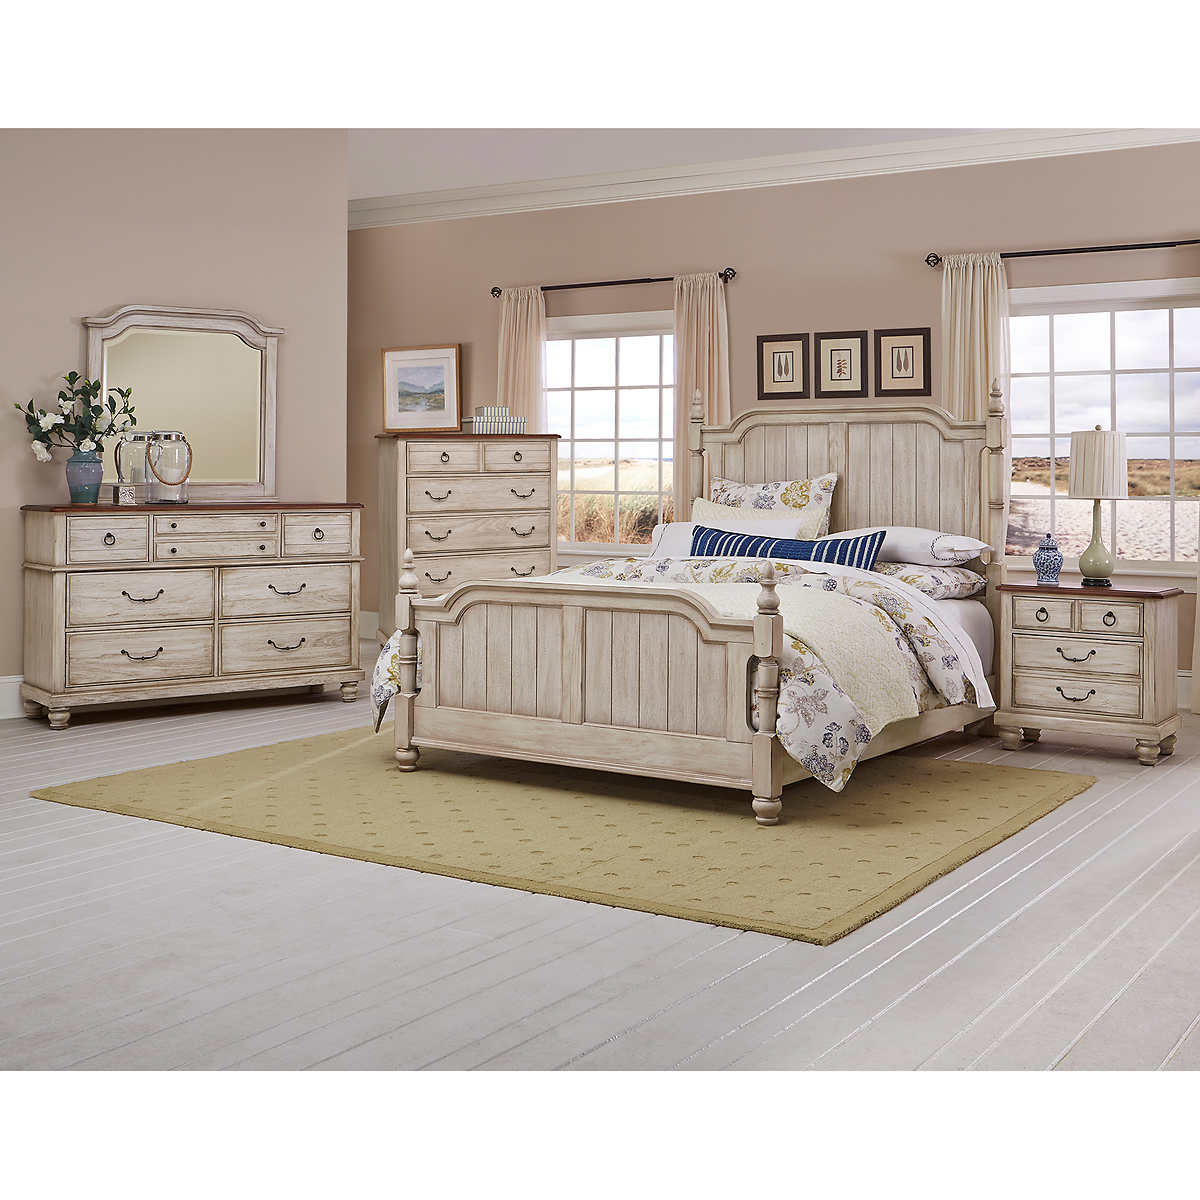 King Bedroom Furniture King Bedroom Sets